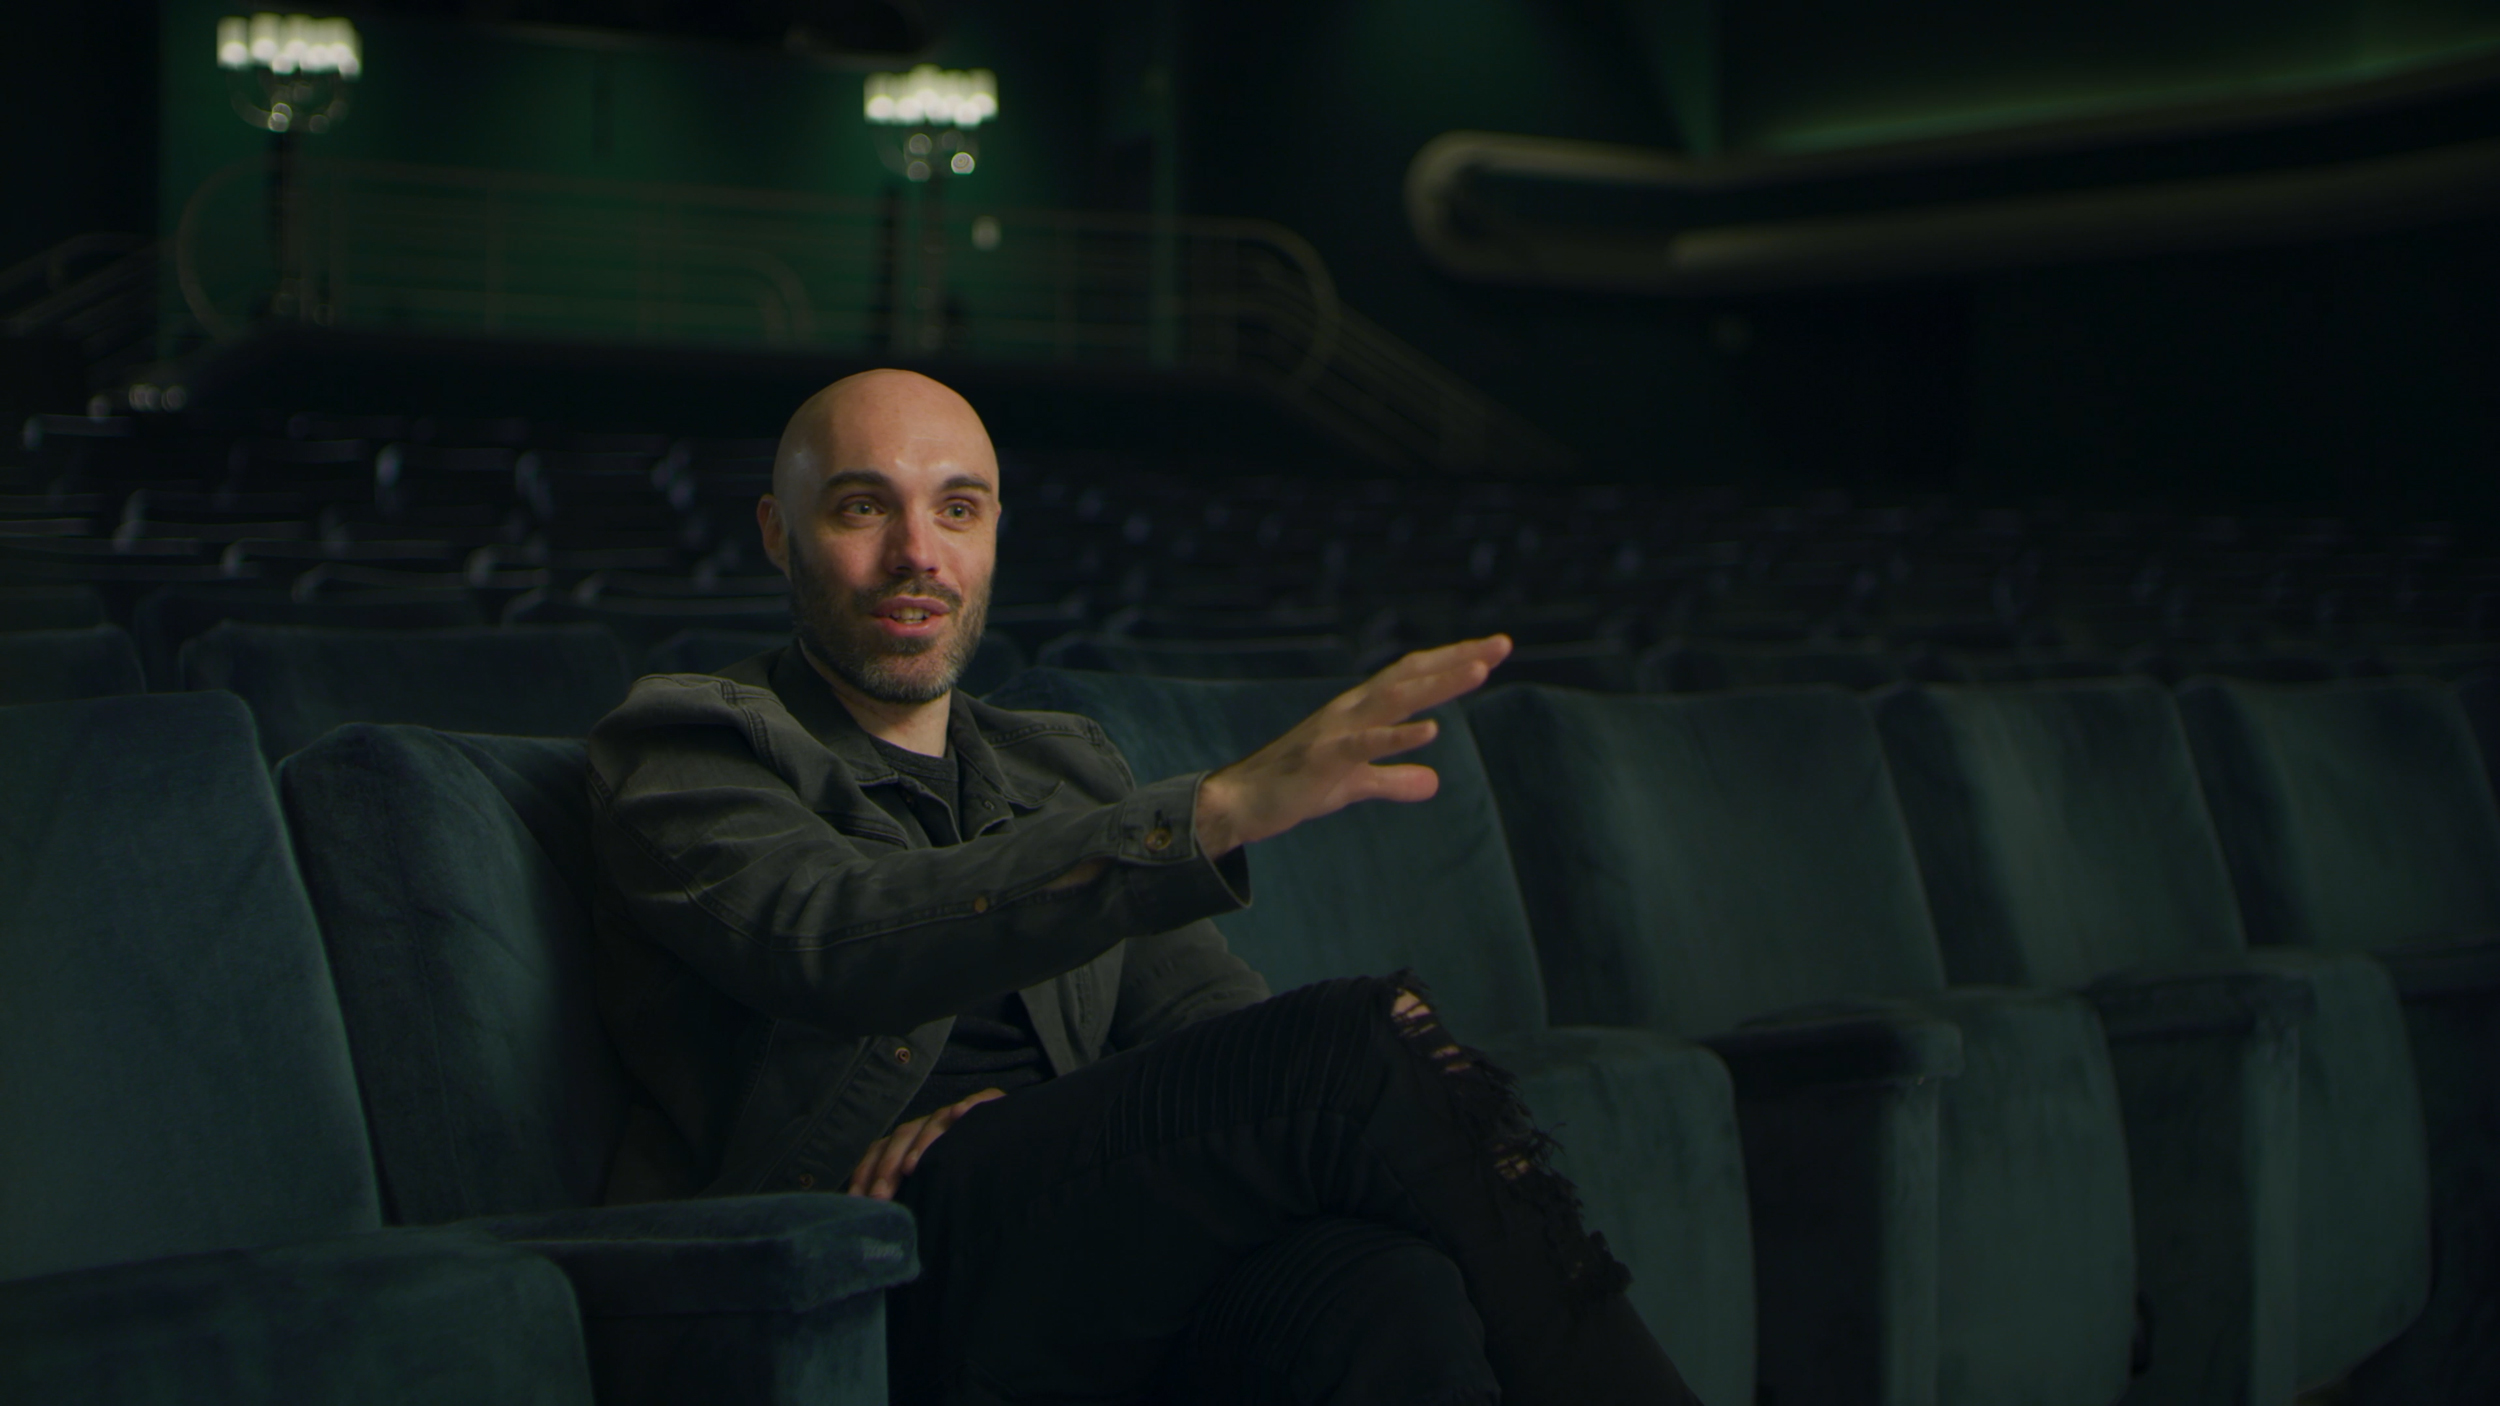 """Filmmaker David Lowery discusses his film """"The Green Knight""""."""